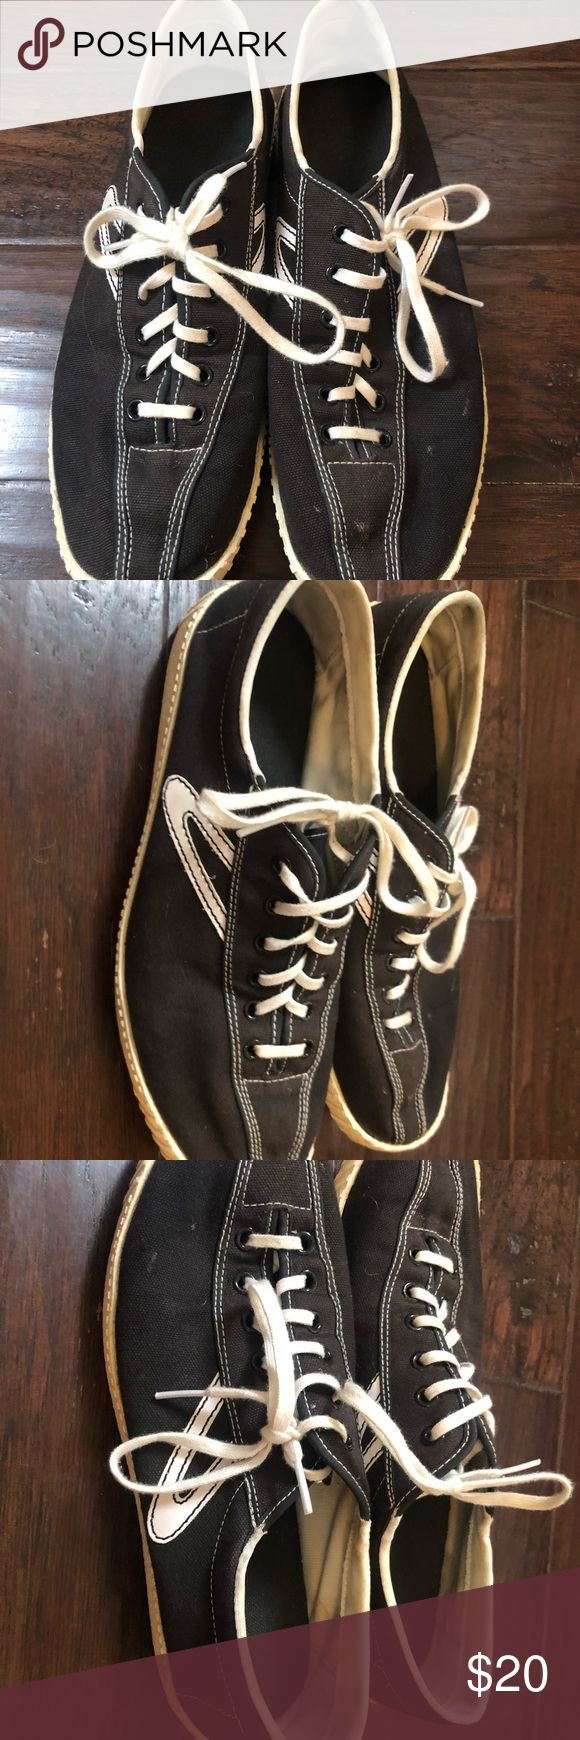 Men's casual sneaker – size 8.5 Men's black and white casual athletic shoes….